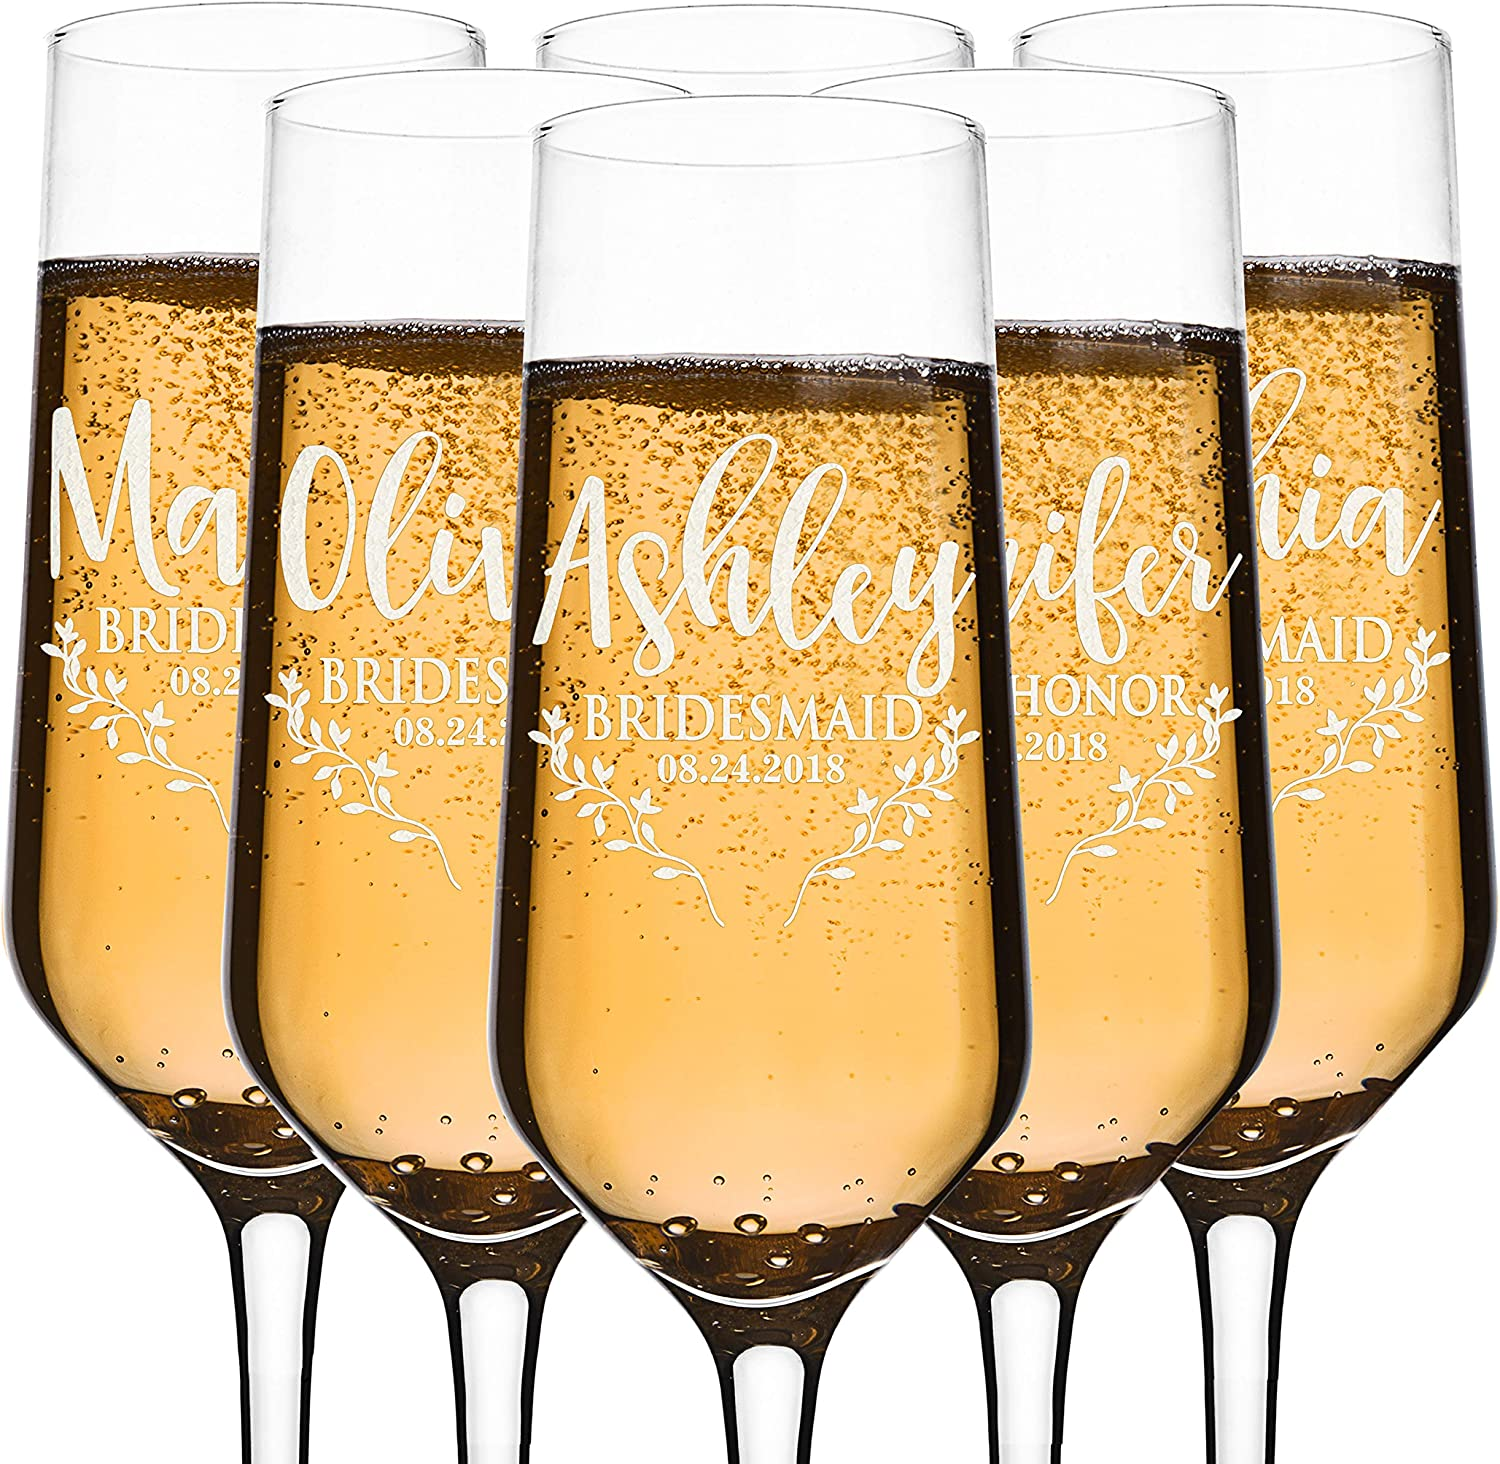 Mr wine glass Bridal party custom name-bachelorette shower personalize and mrs